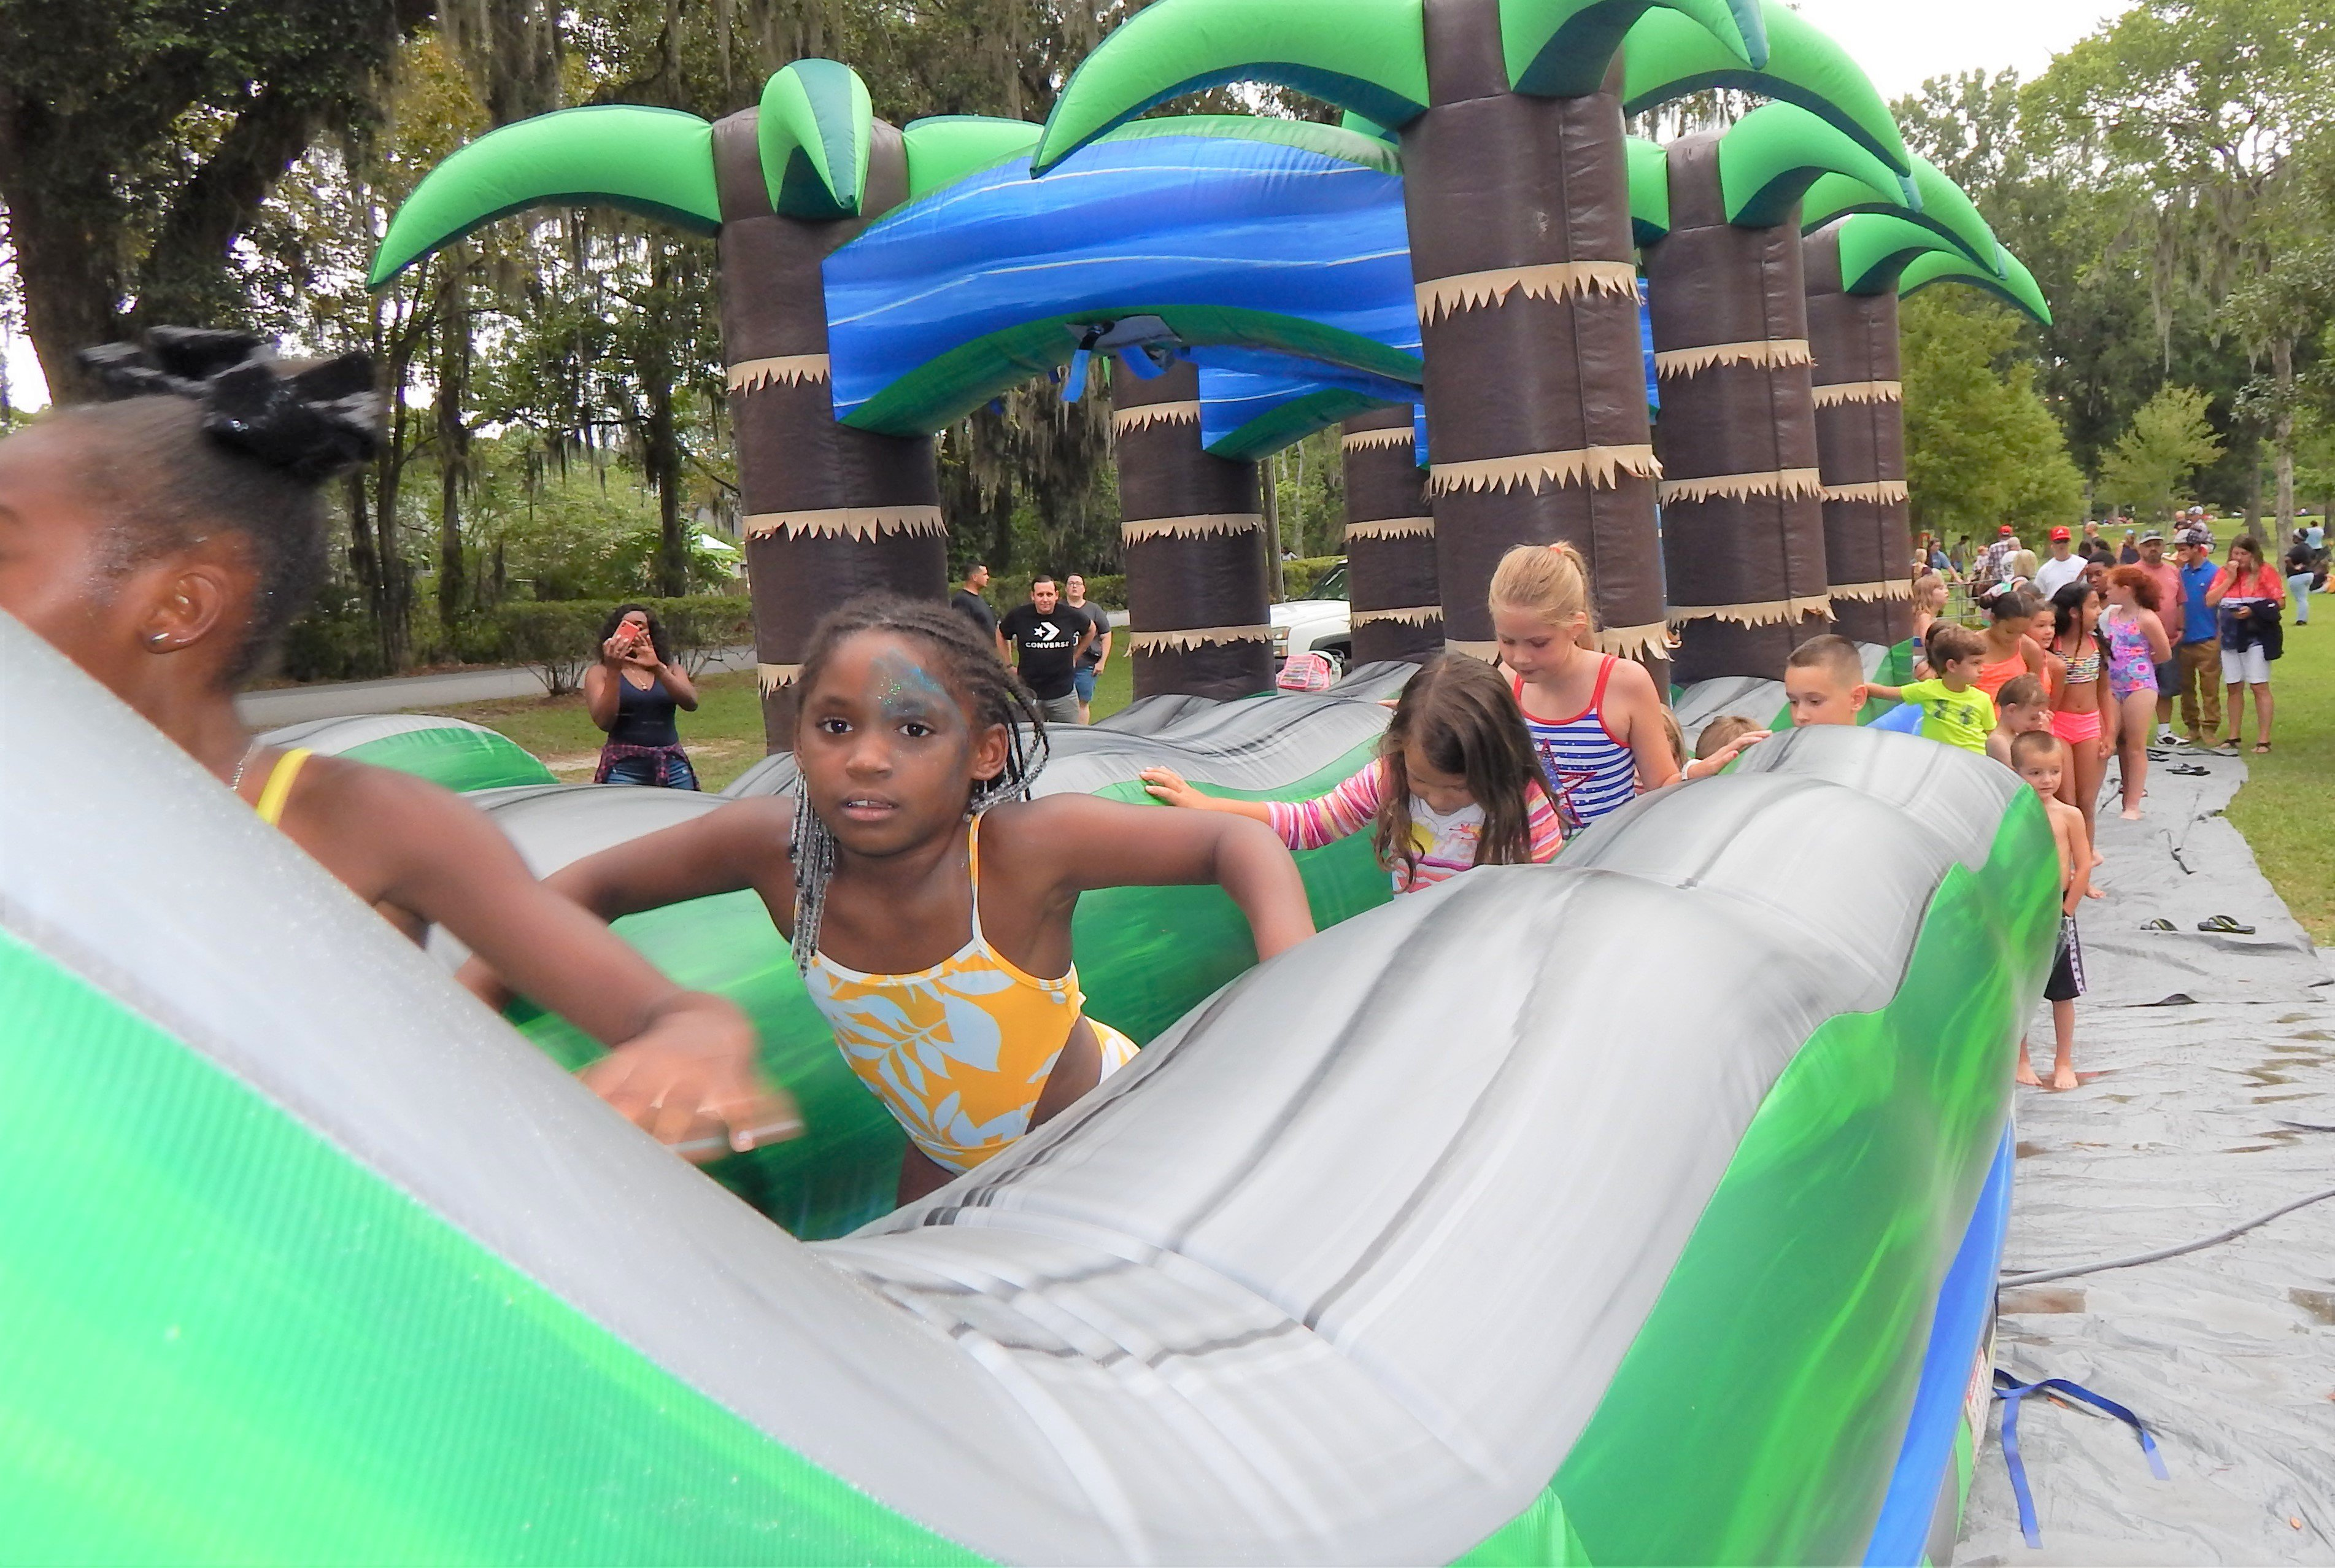 Kids enjoyed the water slides on this warm day. Photo by Mark Swendra.